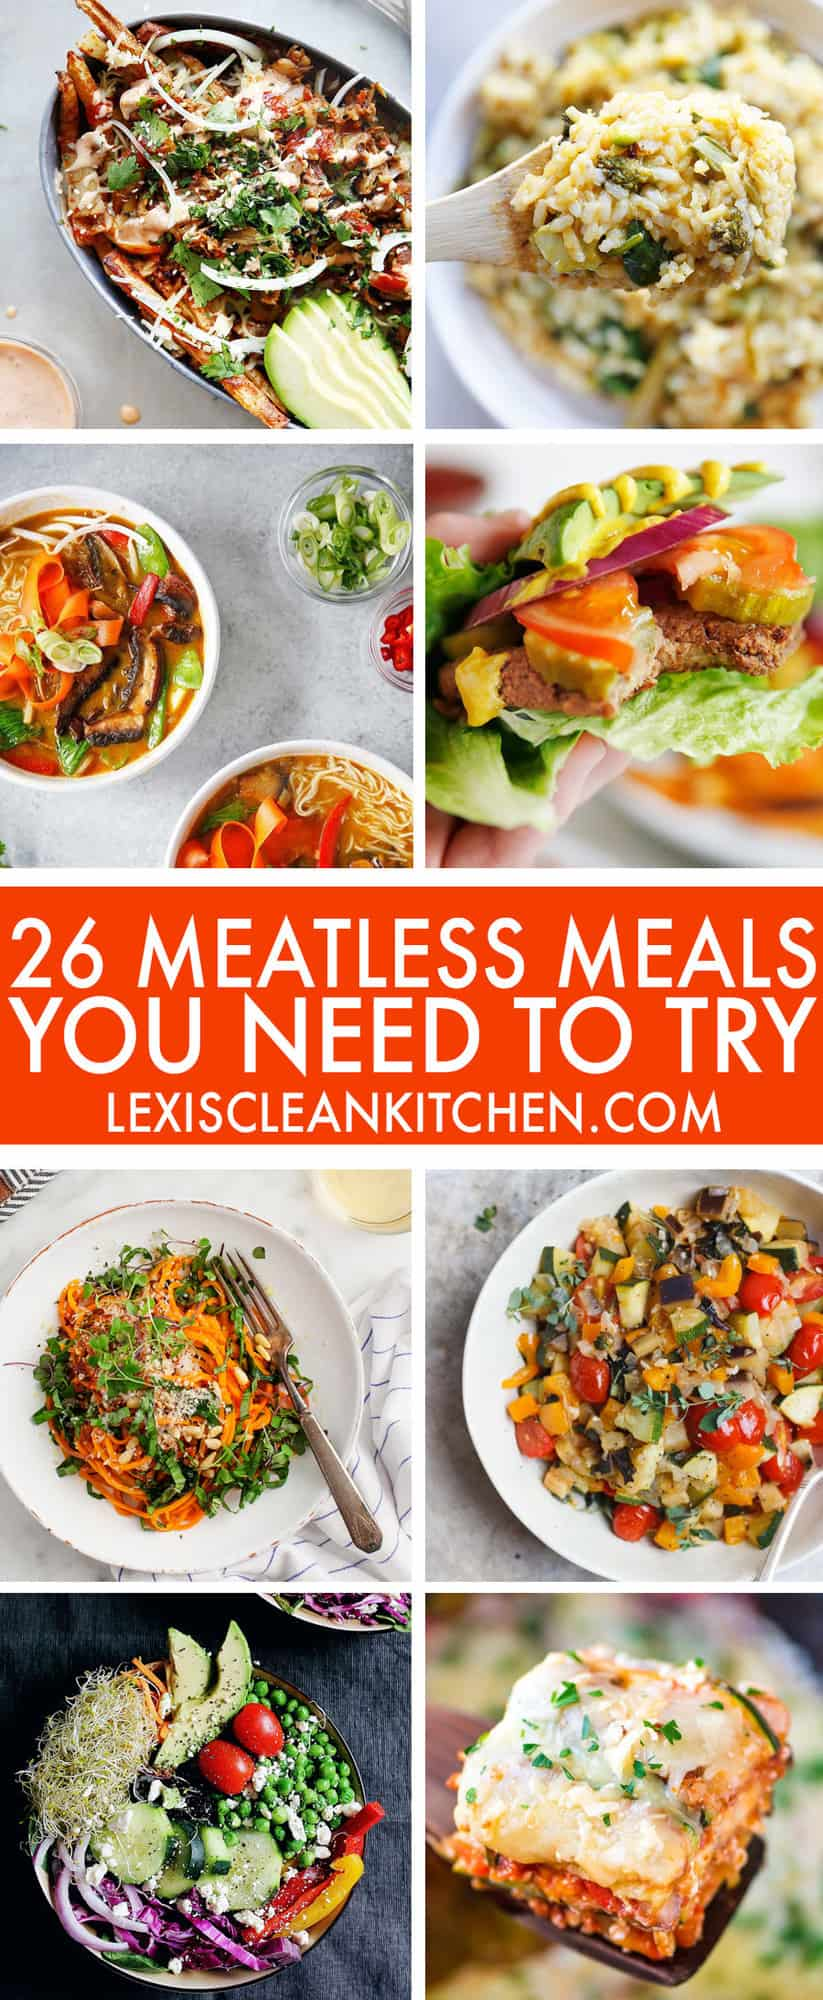 26 Gluten-Free Meatless Monday Meals You Need To Try - Lexi's Clean Kitchen